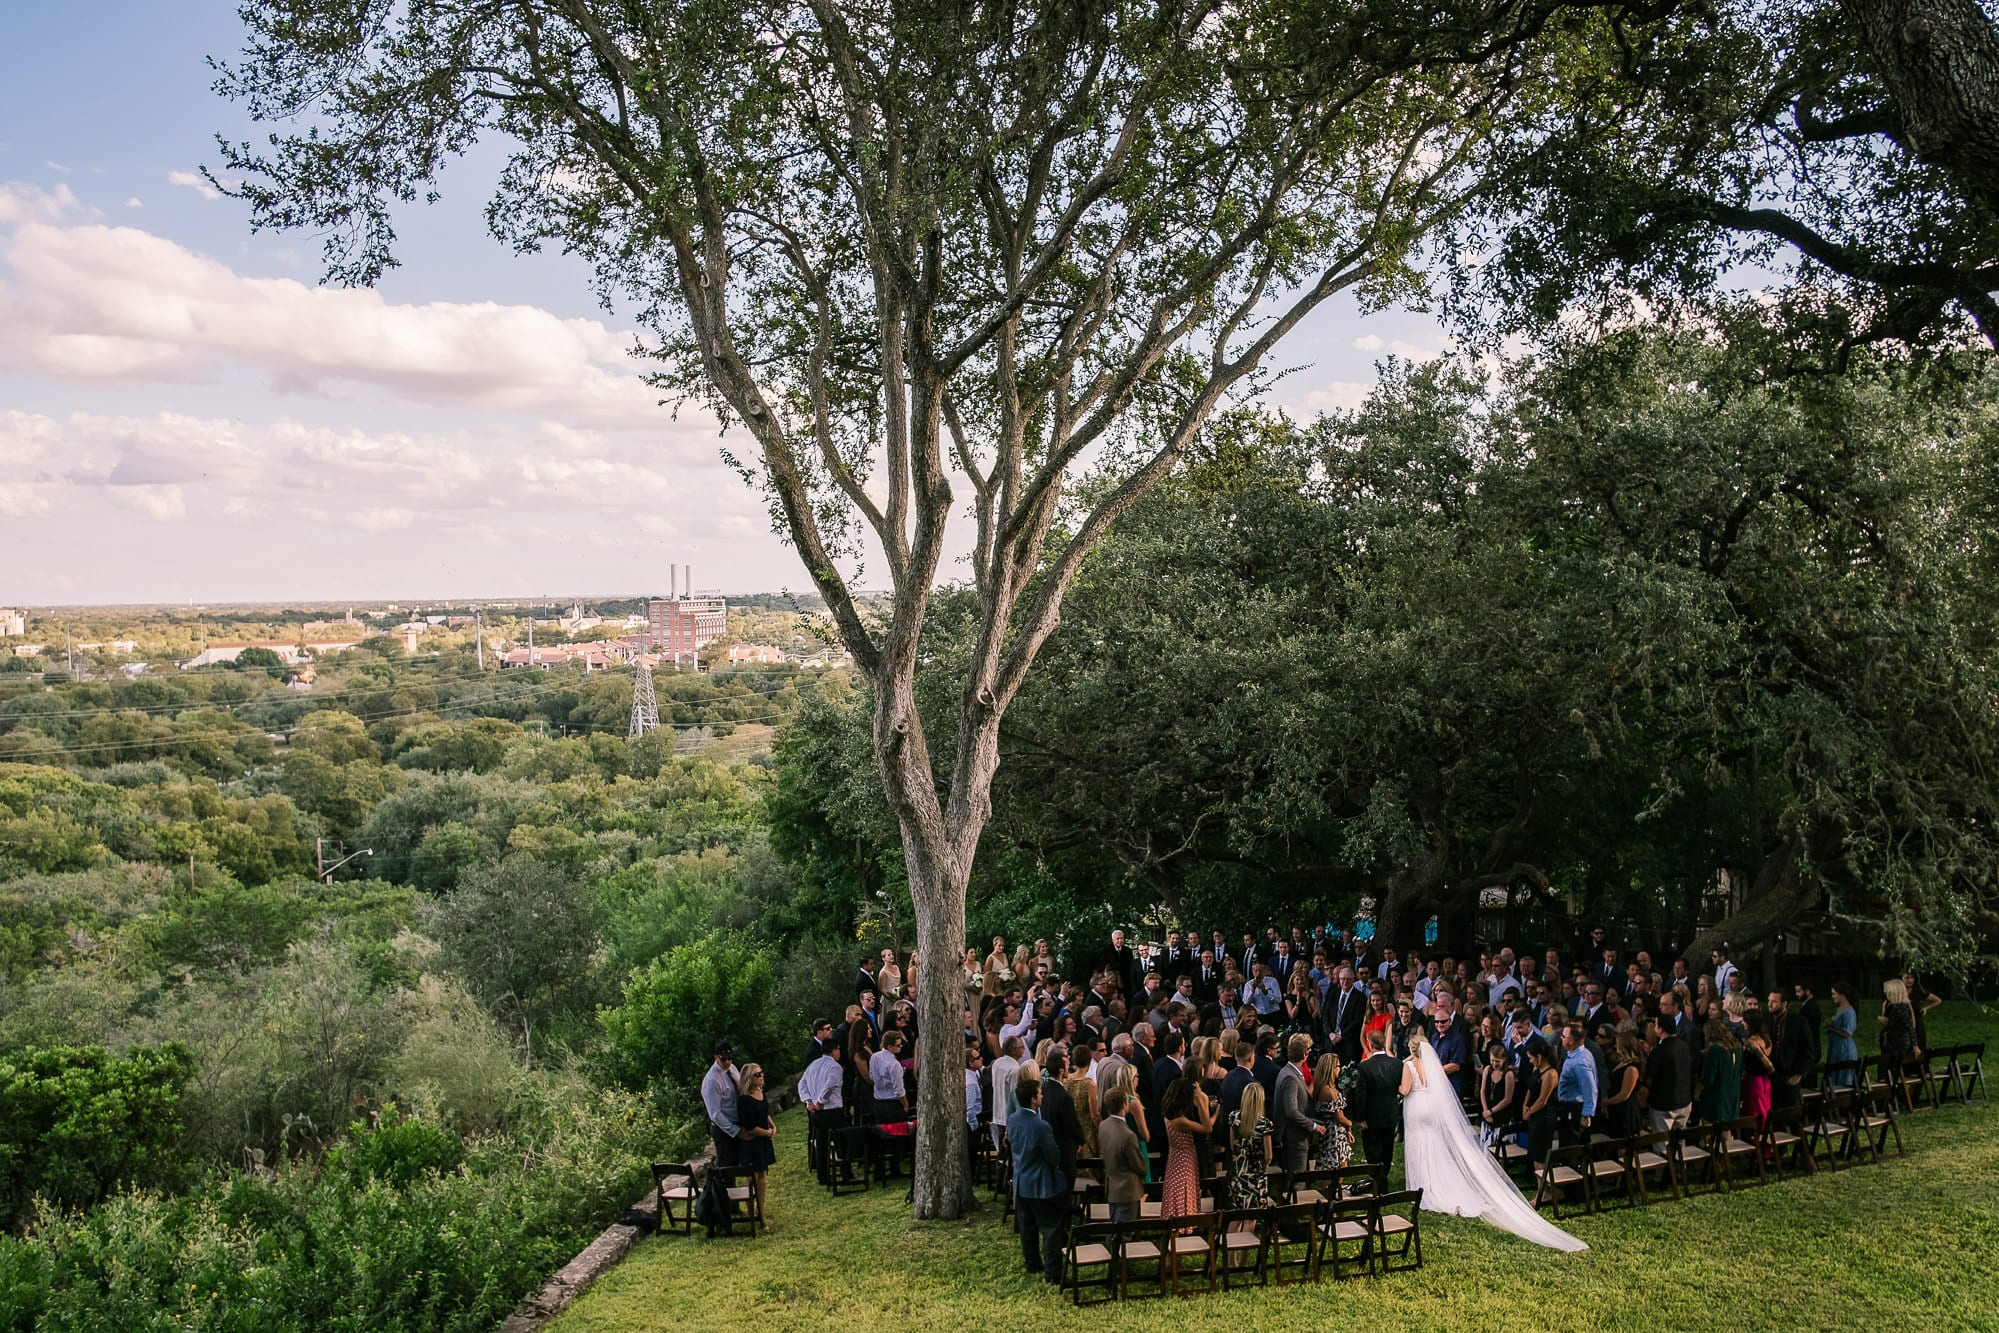 Father of the bride walks her down the aisle at ceremony on edge of sweeping vista